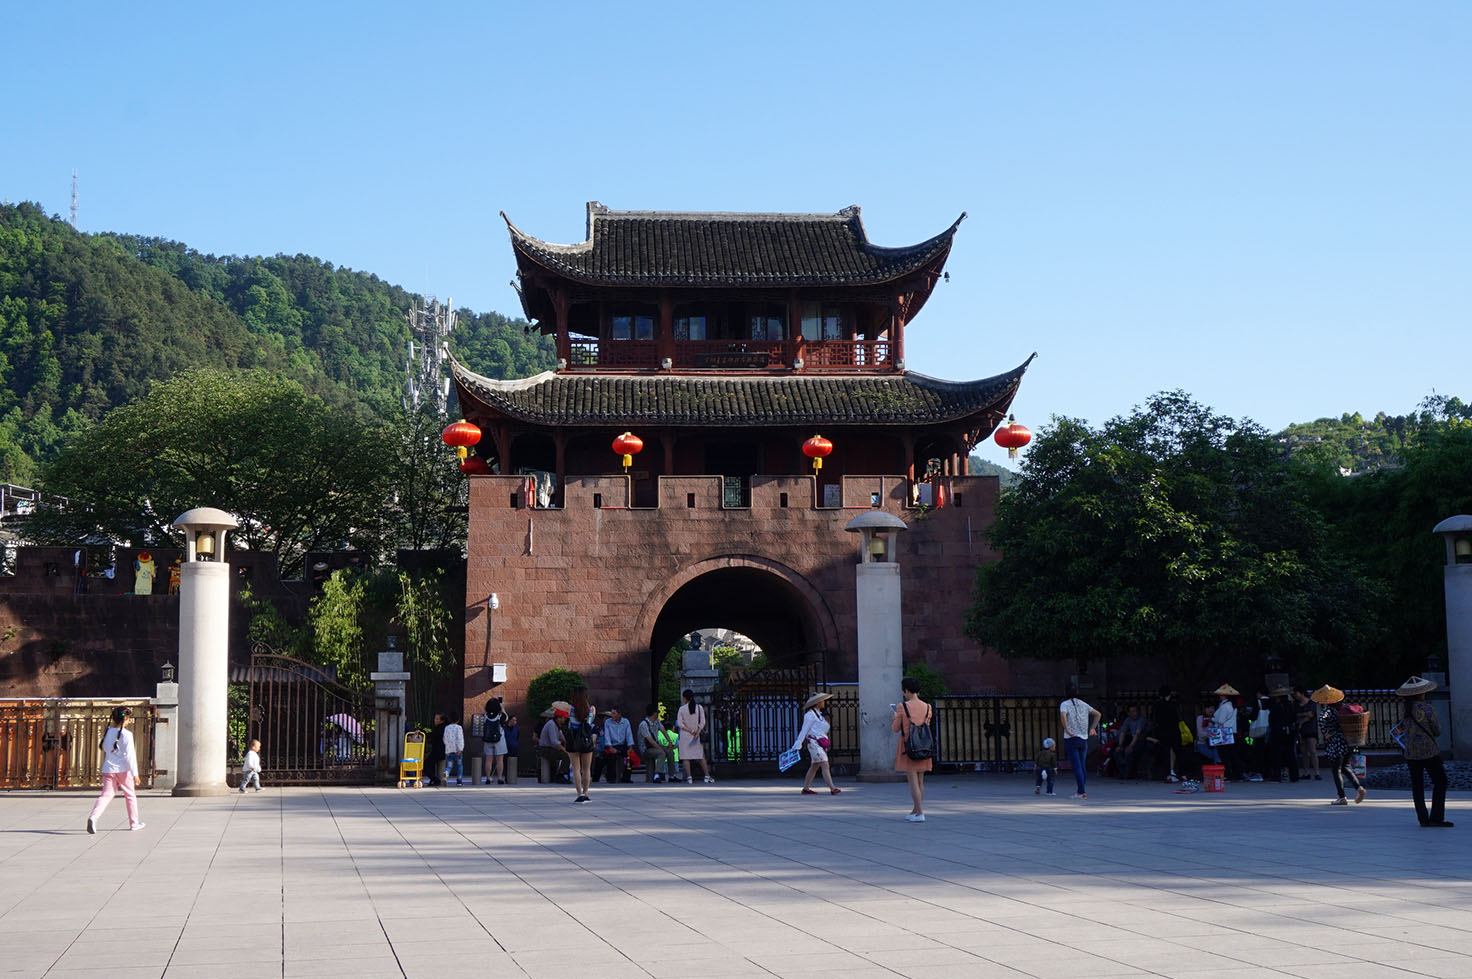 City gate in Fenghuang Ancient Town